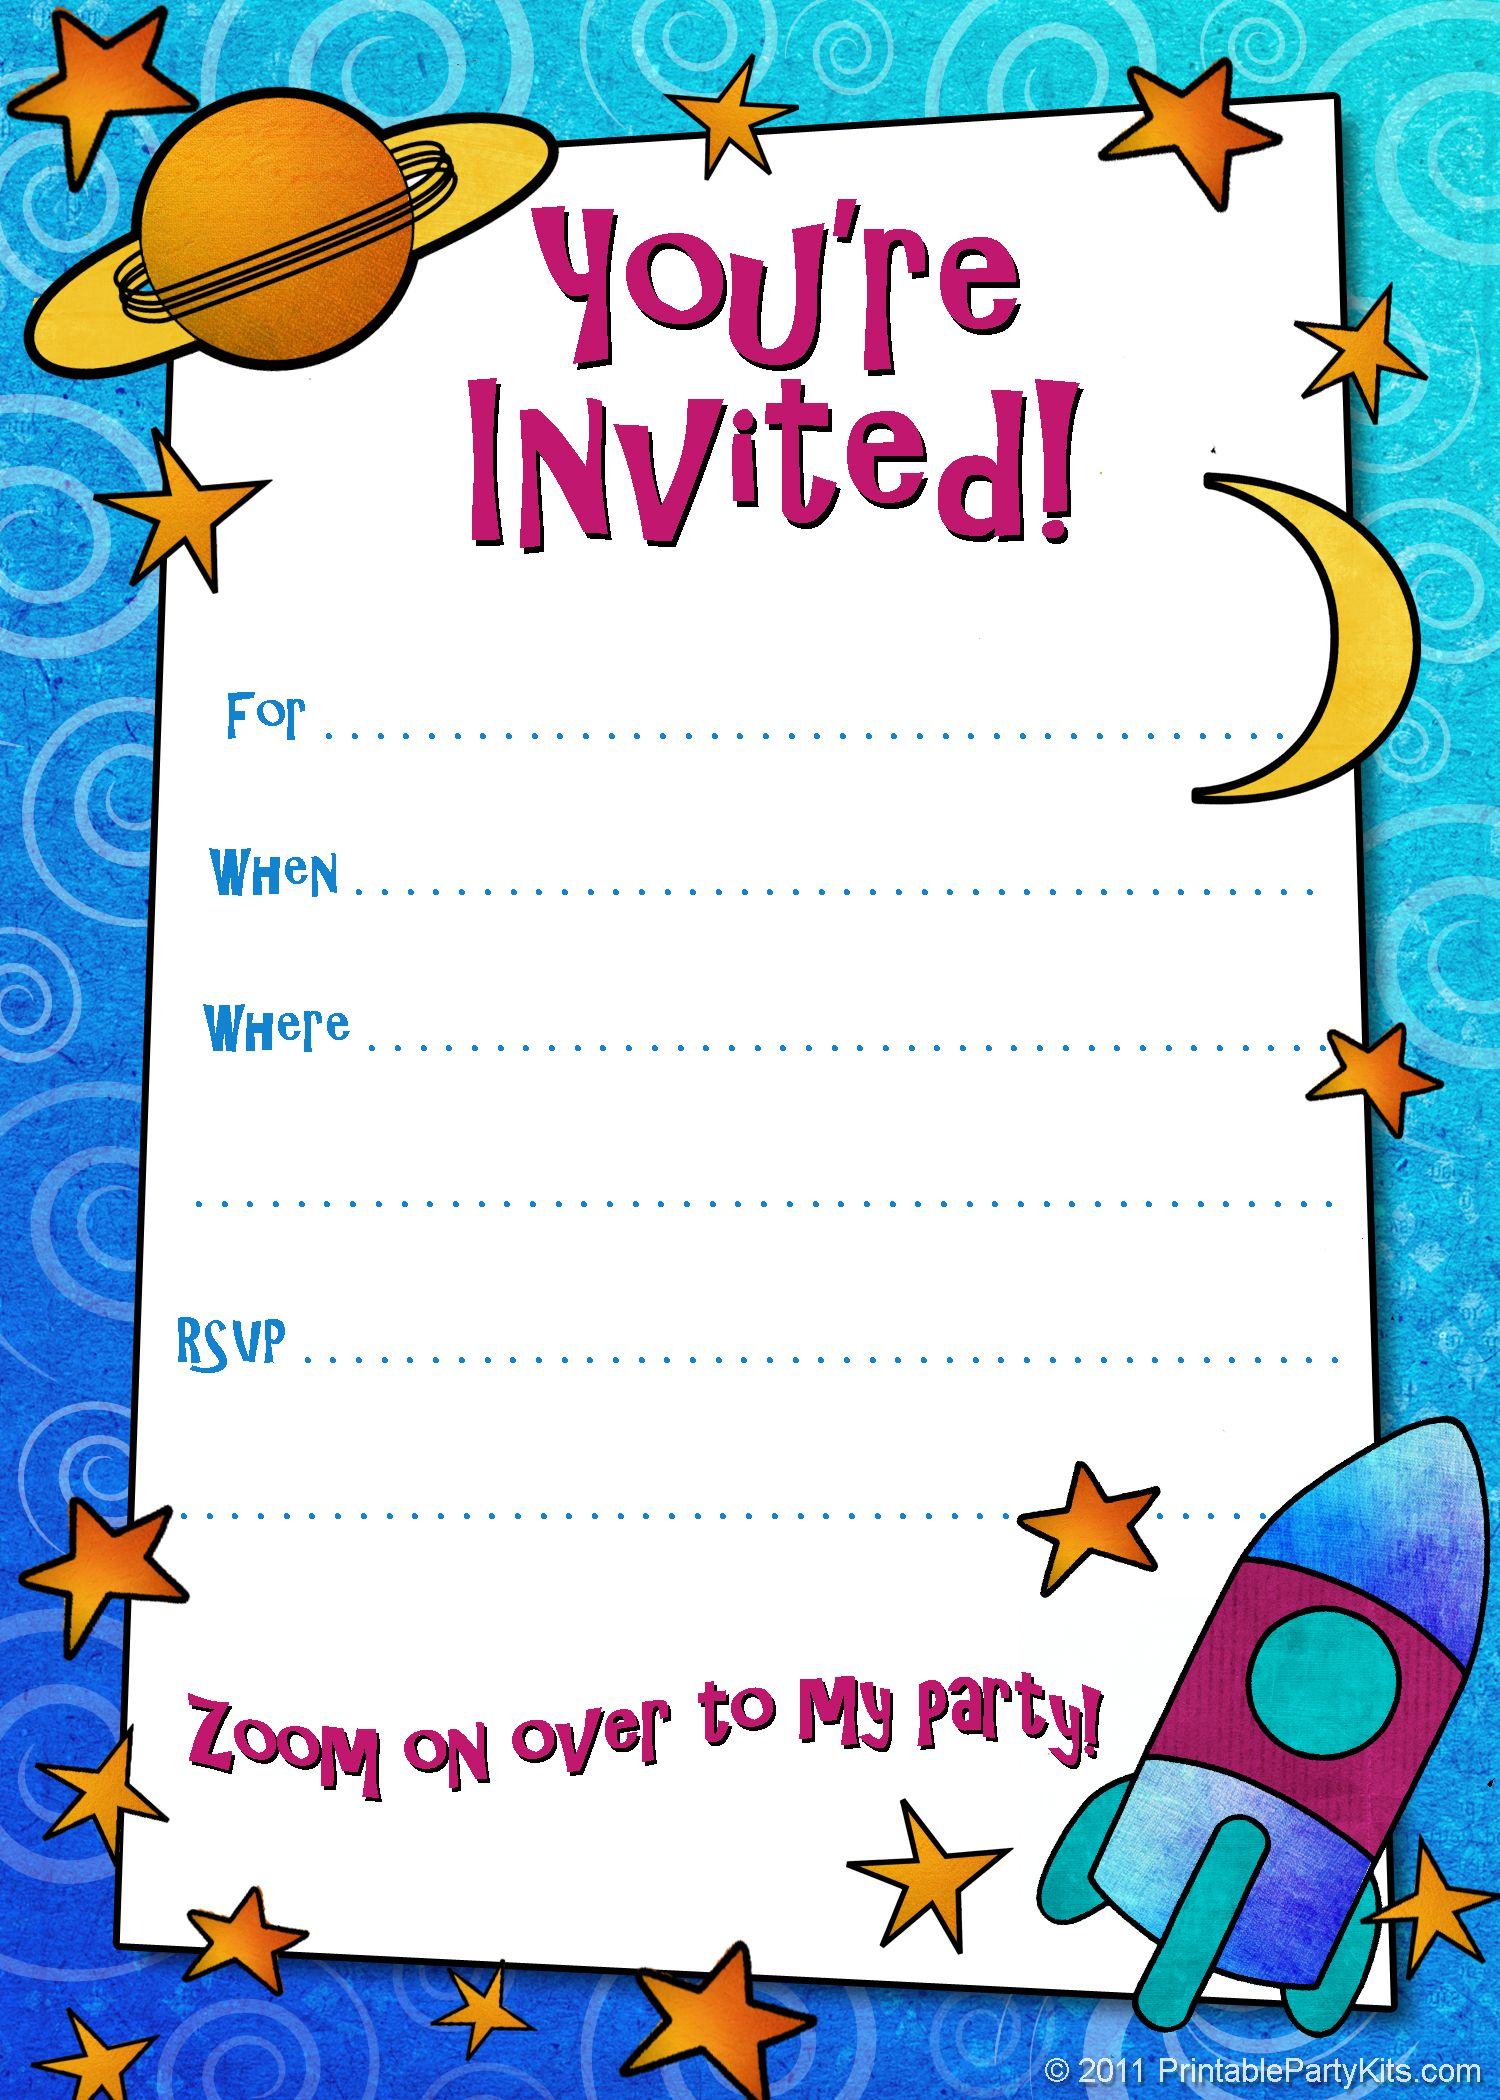 Free printable boys birthday party invitations boy birthday these printable free boys party invites can be made easily at home they come in a variety of themes including cars spaceships frogs barnyard animals stopboris Images